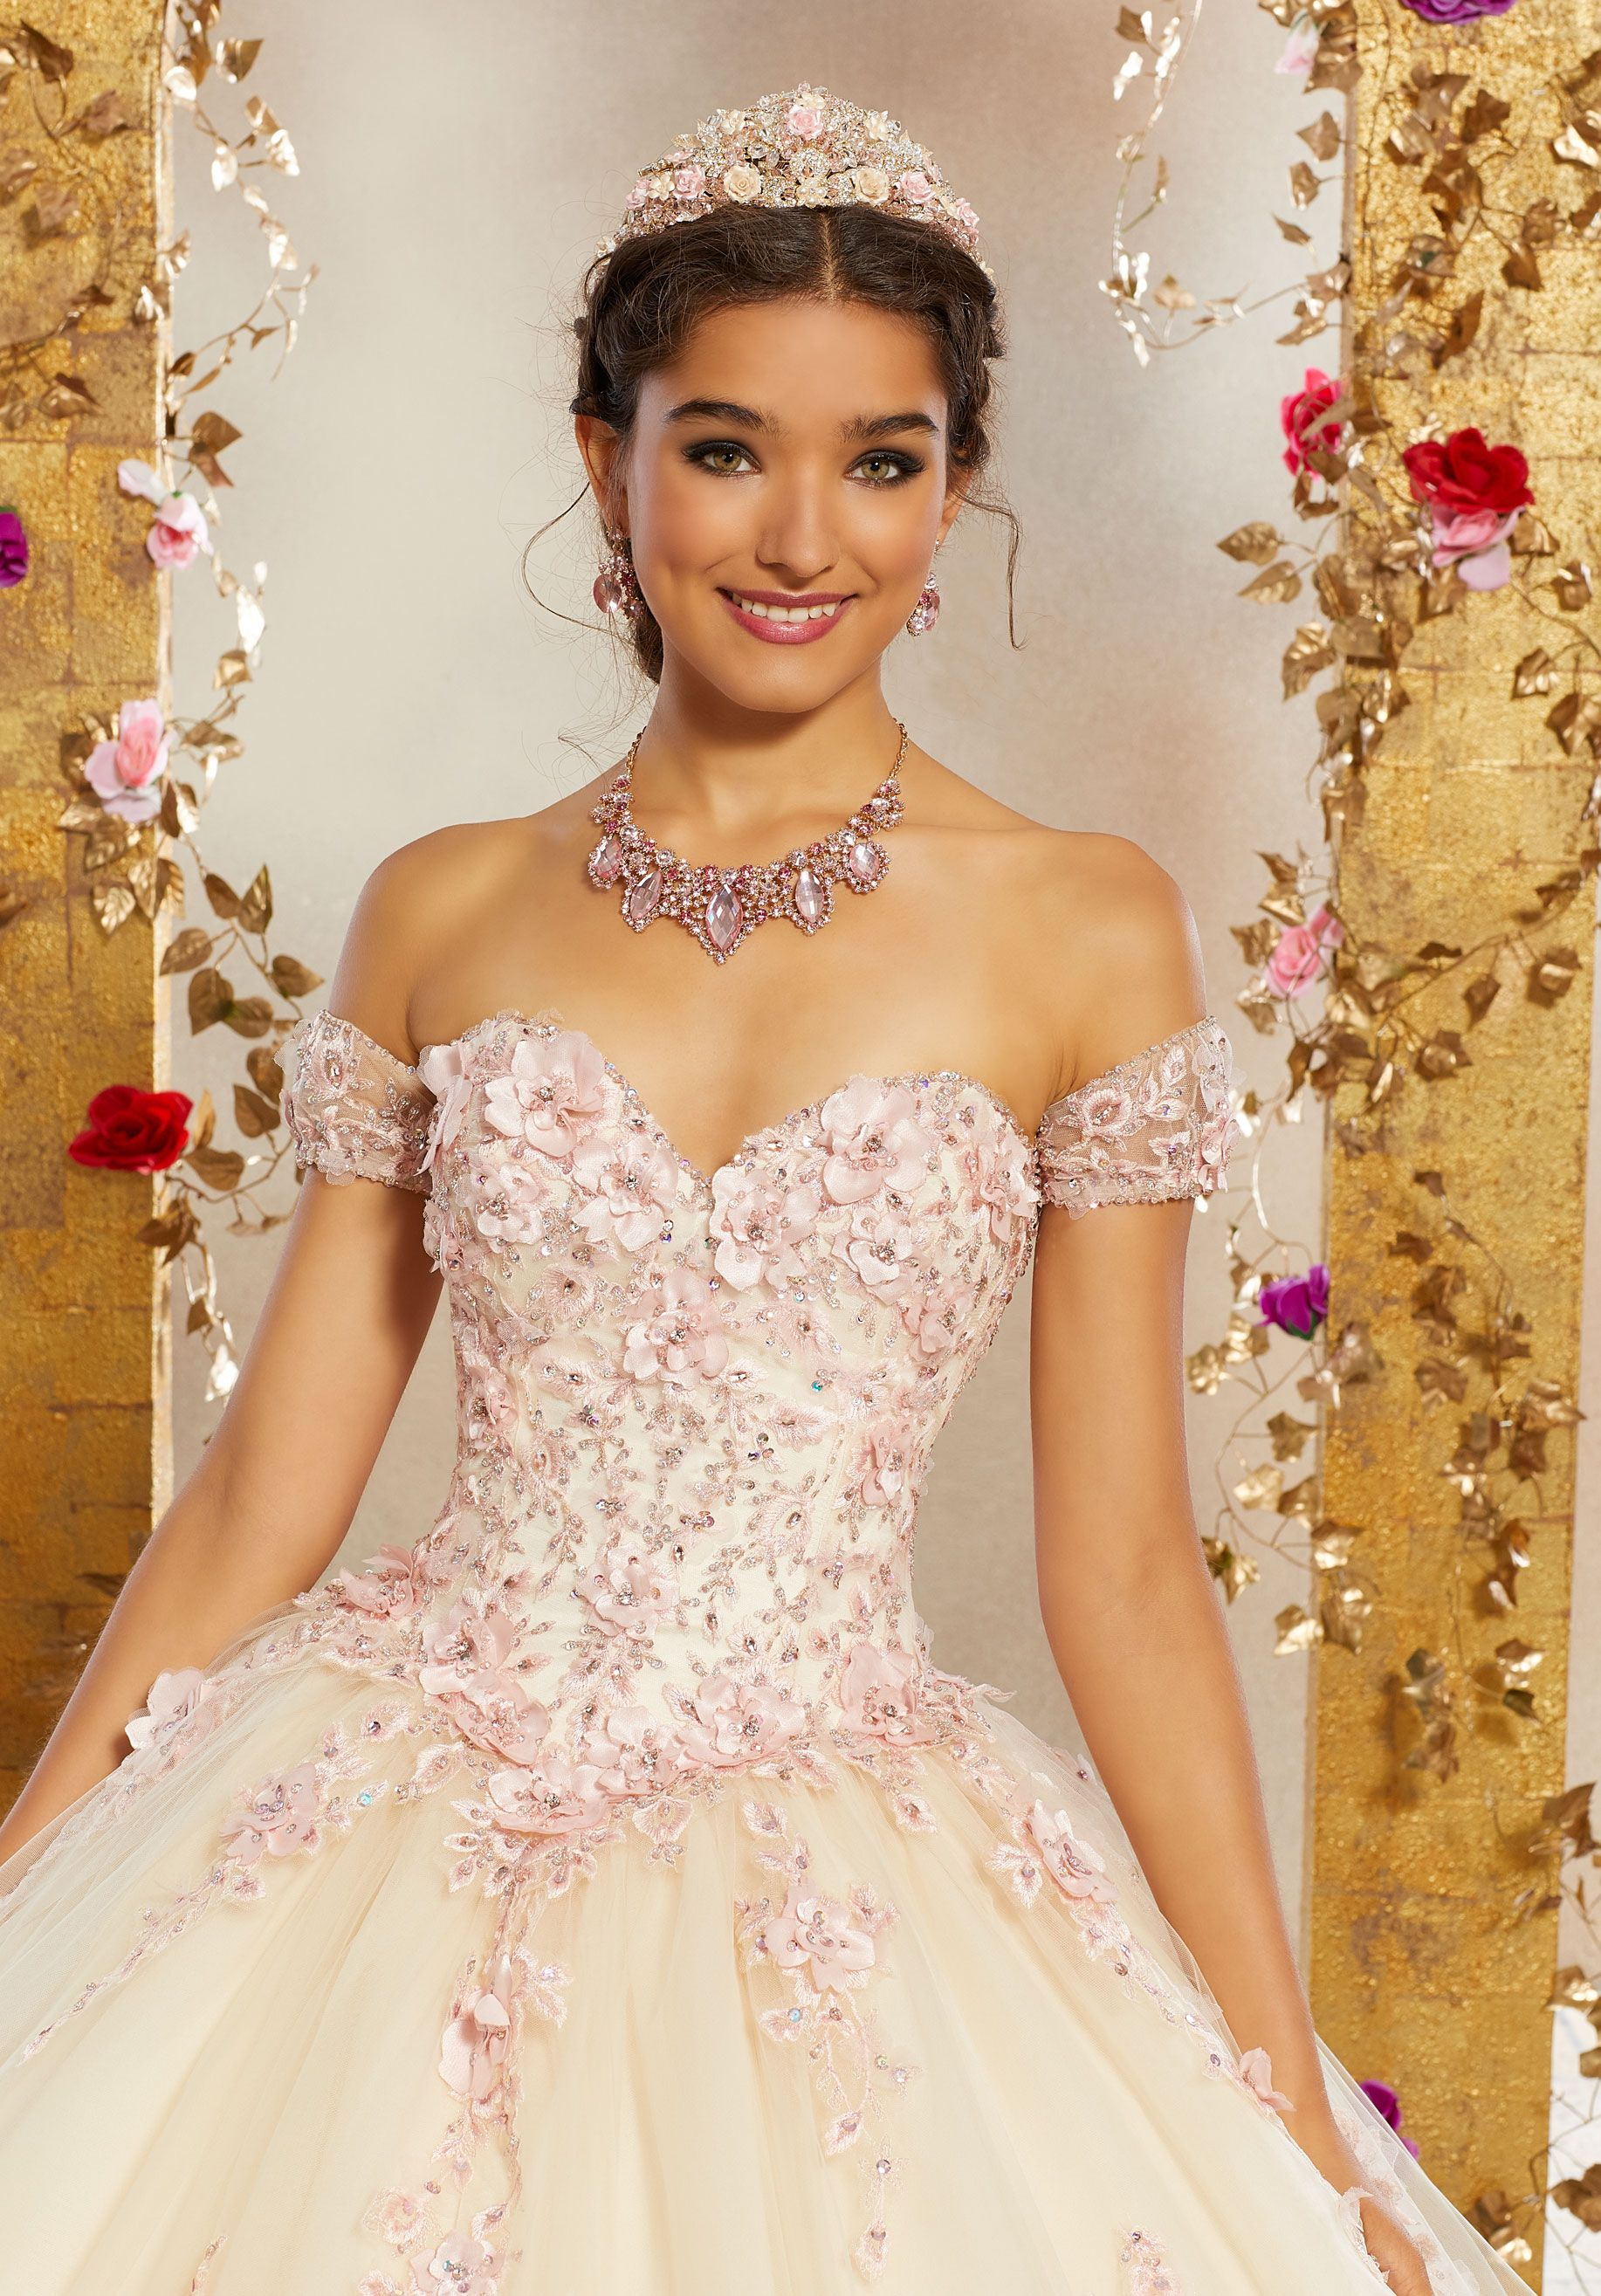 311b8378ab7 Beautiful Quinceañera Ballgown featuring a Sweetheart Neckline Bodice  Accented in Three-Dimensional Floral Appliqués and Embroidery.